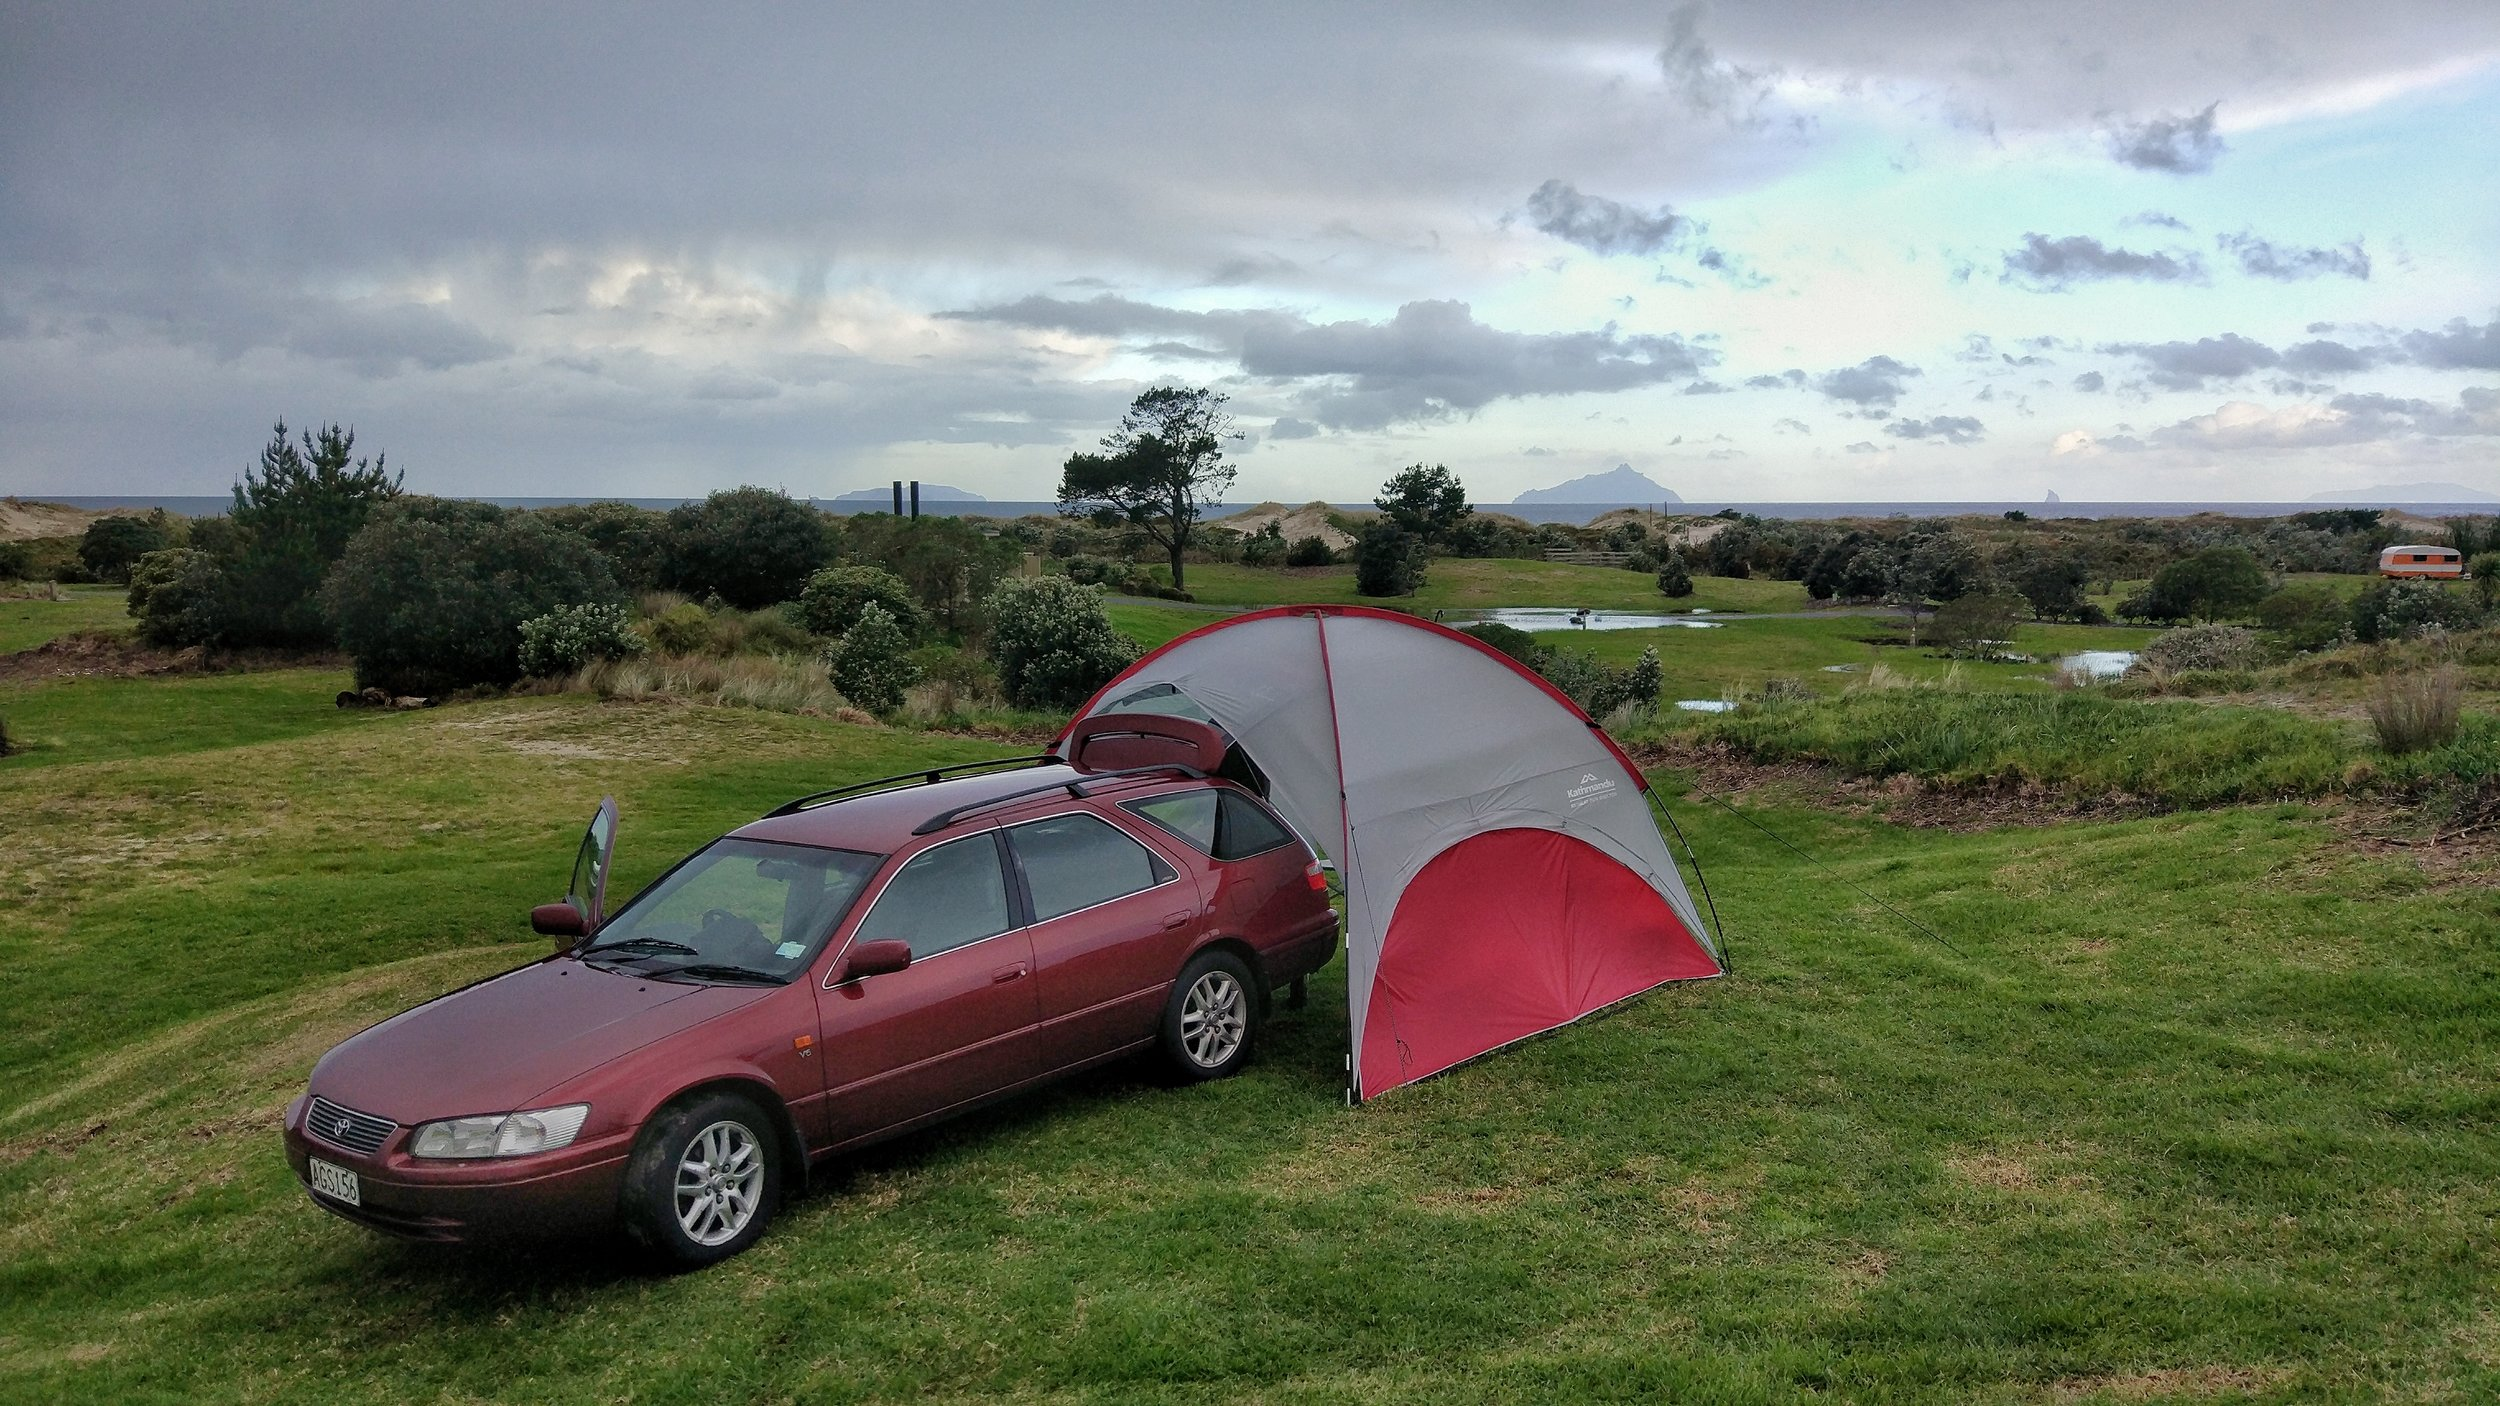 20170909_Northland_Whangarei_Uretiti_DOC_Campground_day2_stanley.jpeg